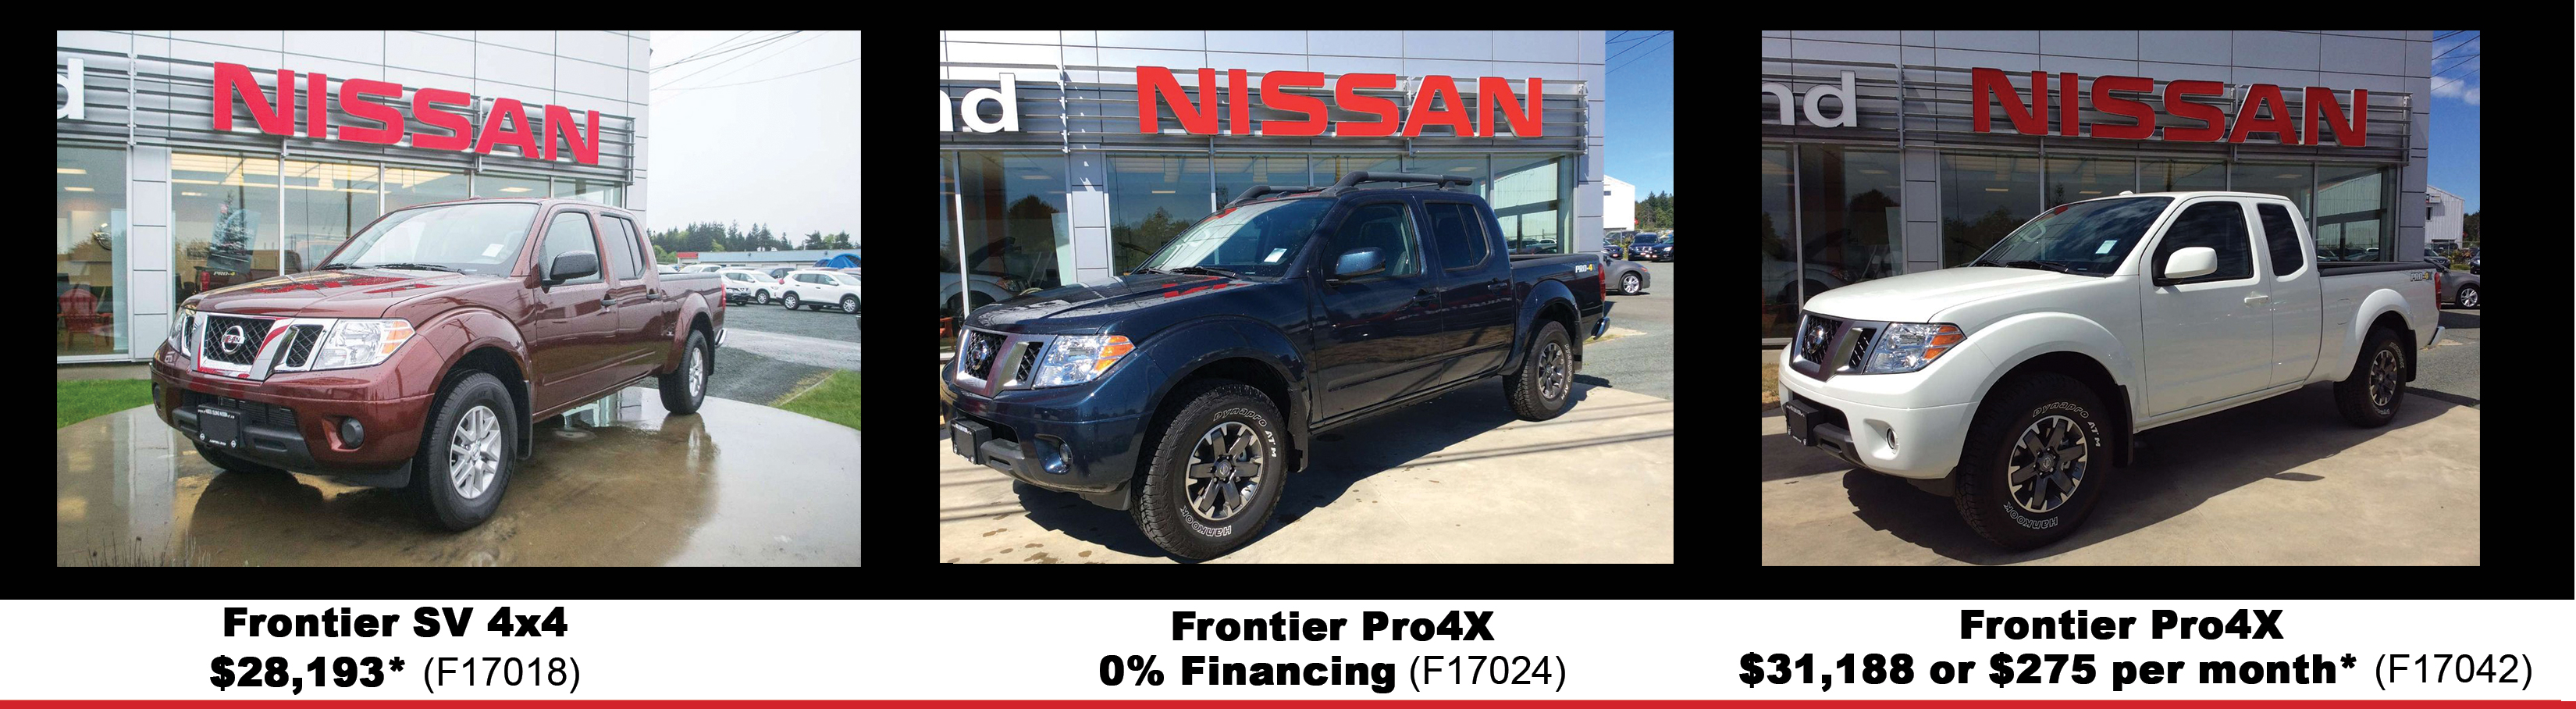 nissan frontier inventory